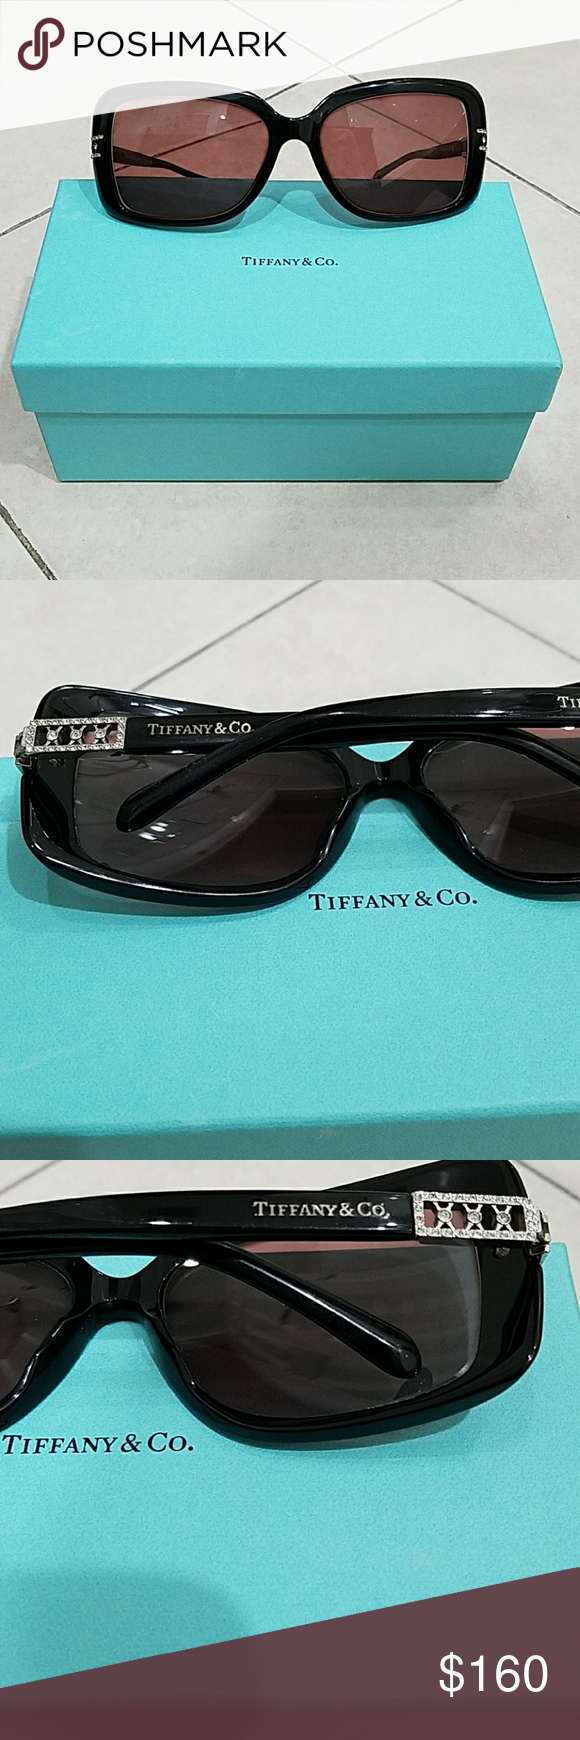 1da6800c75e1 I just added this listing on Poshmark  Tiffany   Co sunglasses and box with  certicate